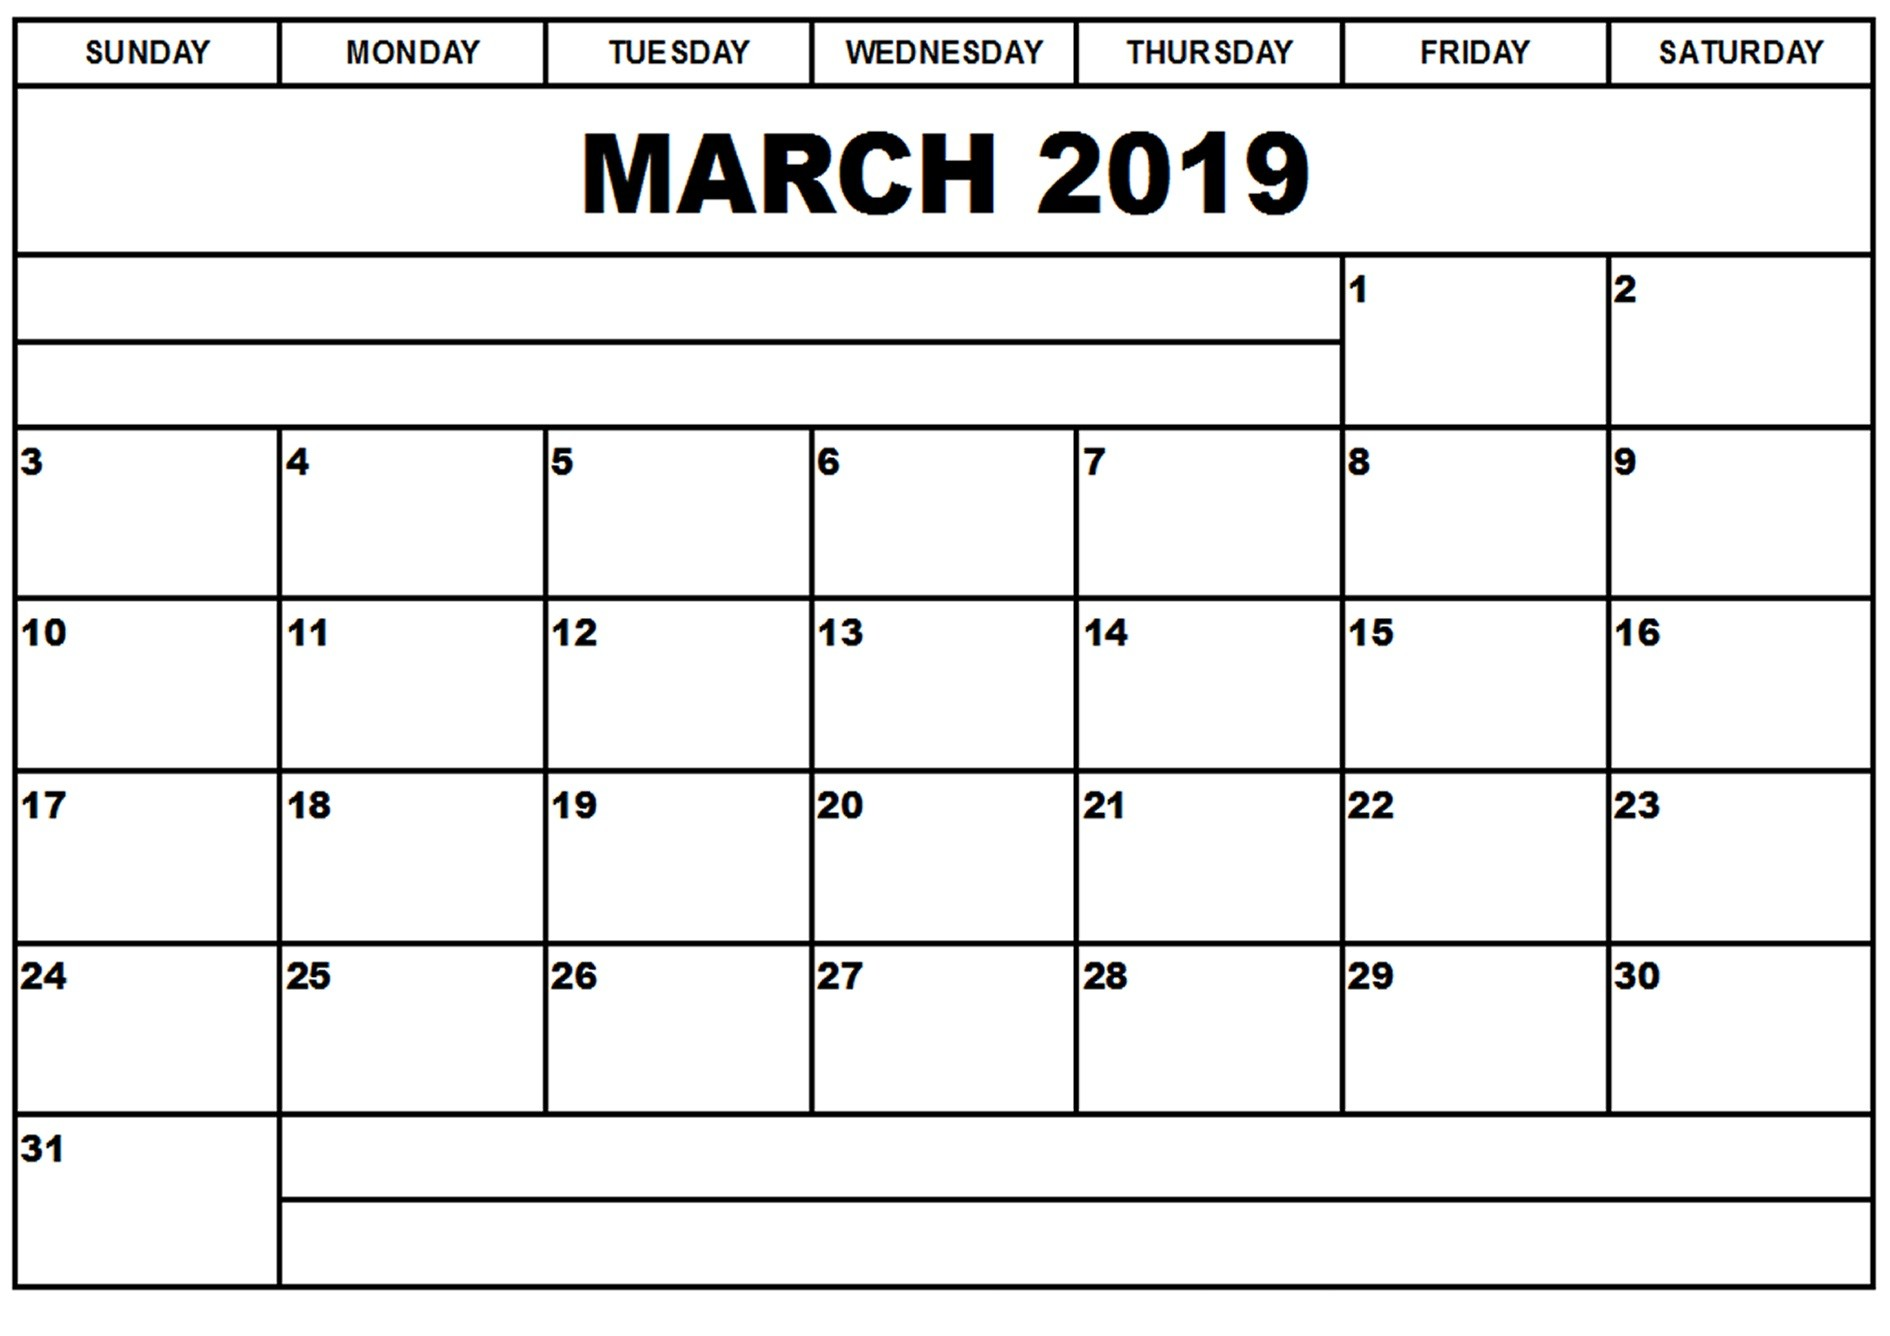 March Calendar 2019 Recientes March 2019 islamic Calendar – March 2019 Calendar Printable Of March Calendar 2019 Más Populares February March Calendar 2019 2018 Printable Calendar Store